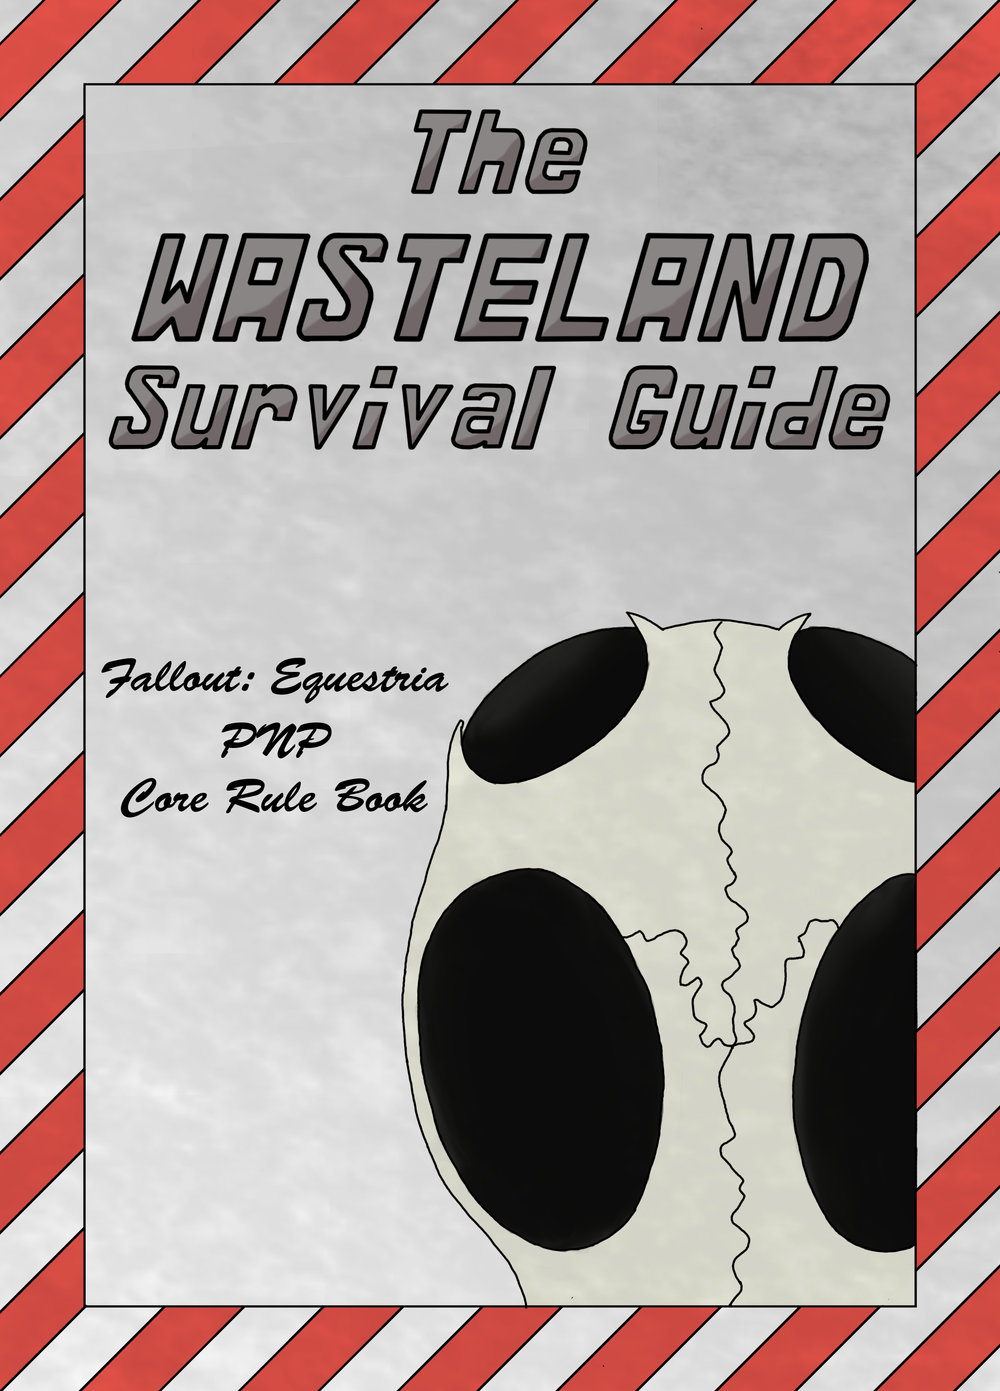 Wasteland Survival GuidE colour 2.jpg